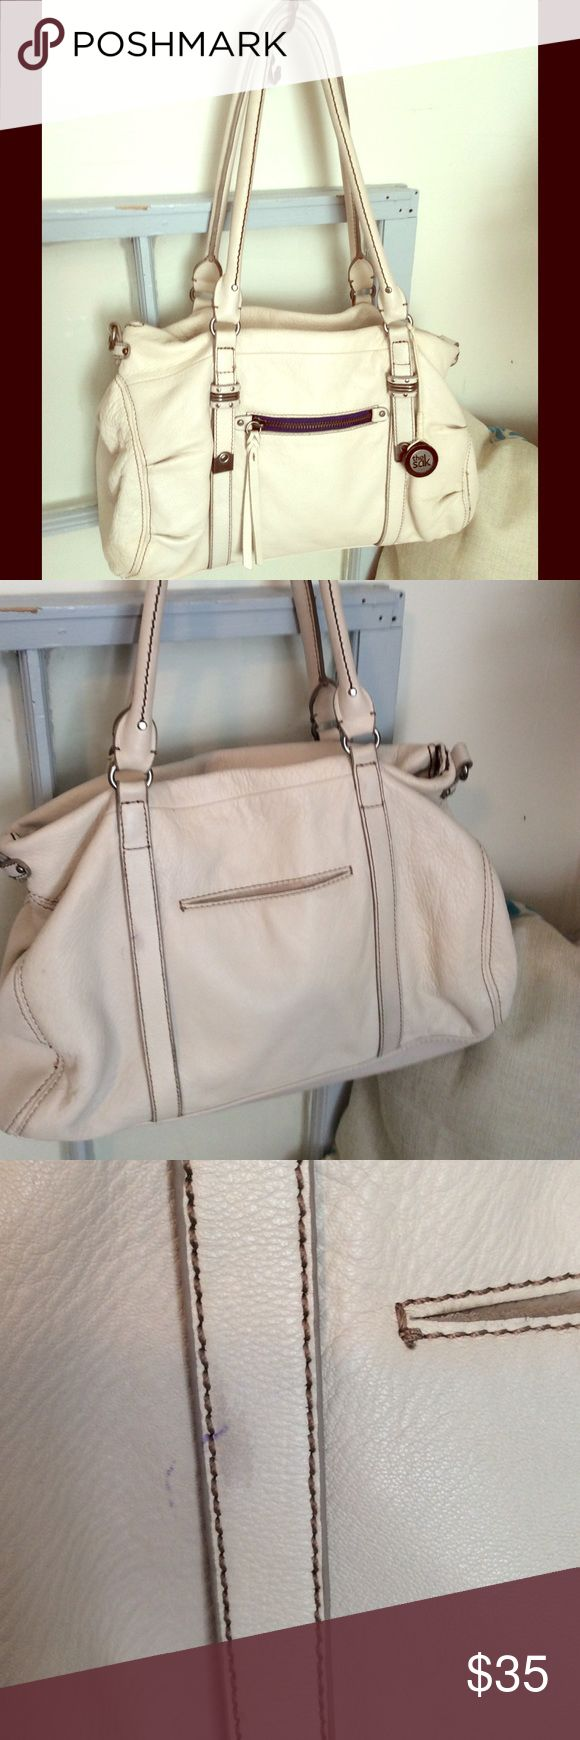 The SAK cream shoulder bag . The SAK cream colored shoulder bag is very roomy. Interior is deep and has zipper pocket  and two organization slots . Very clean. Only flaw is  a pen spot on backside shown in pix # 3 close  up and pix # 2  hanging up. Great bag. The Sak Bags Shoulder Bags